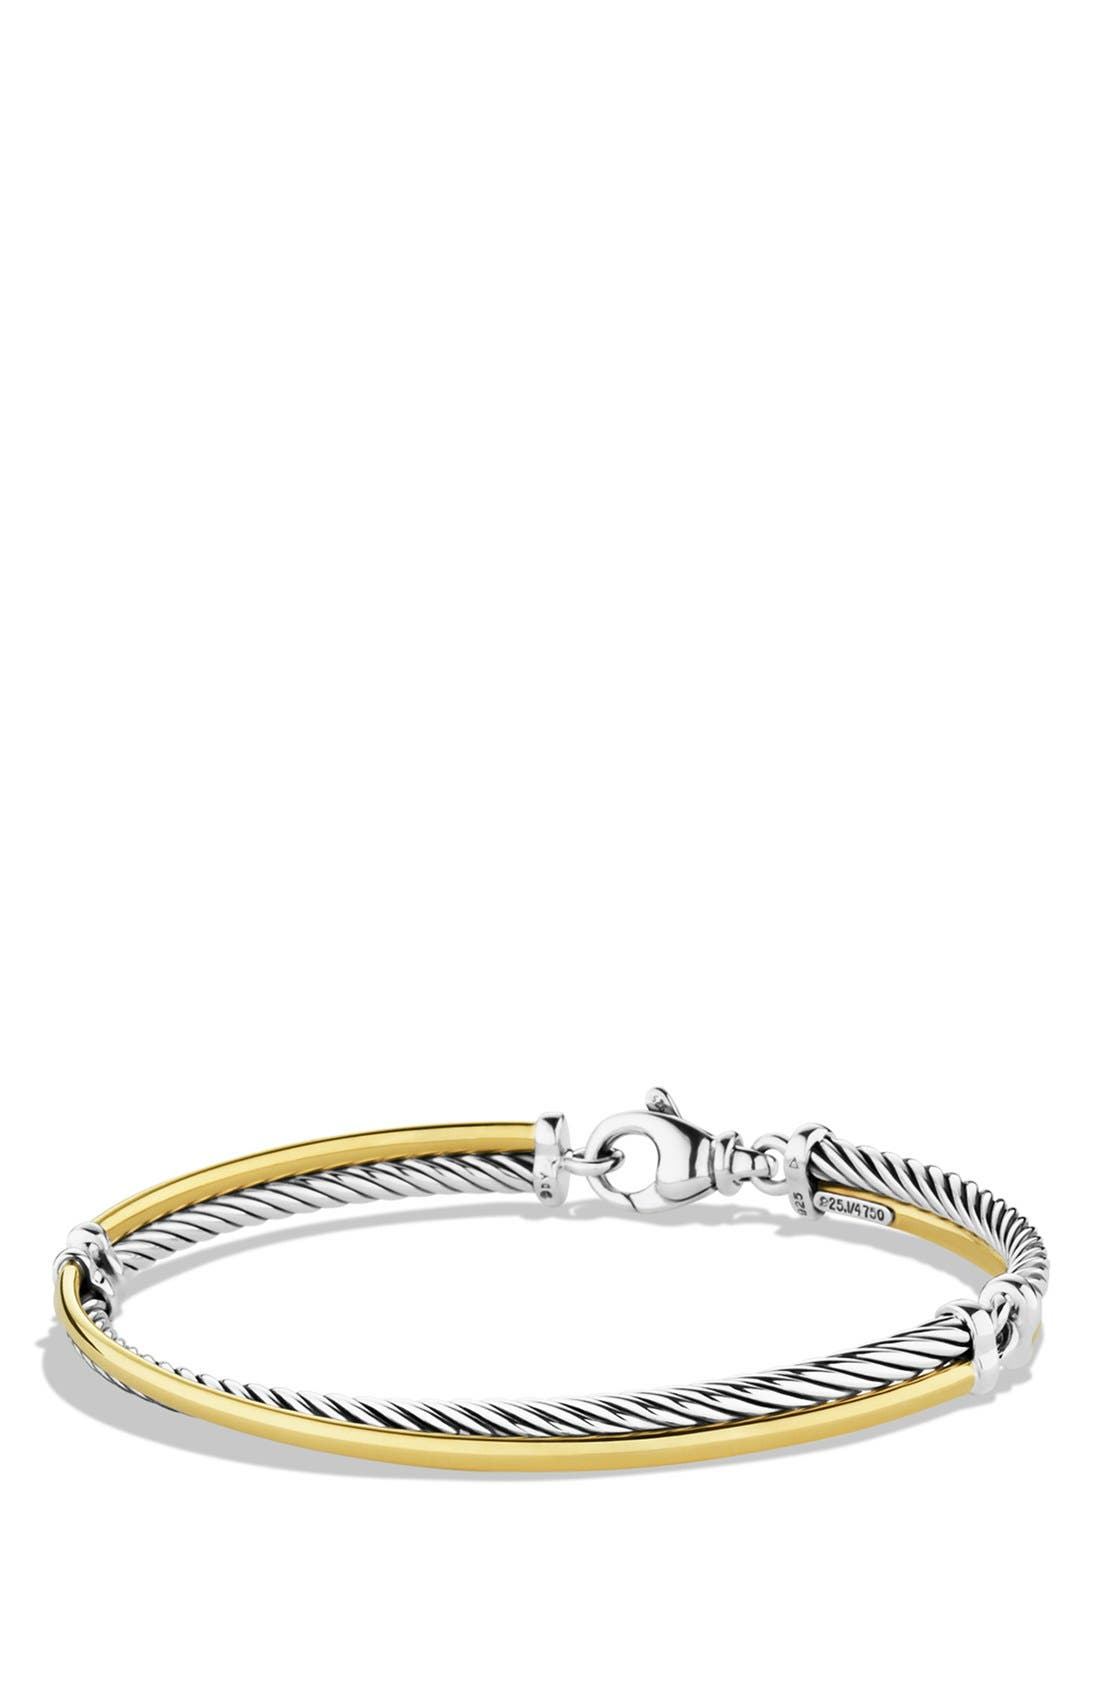 'Crossover' Bracelet with Gold,                             Main thumbnail 1, color,                             Two Tone